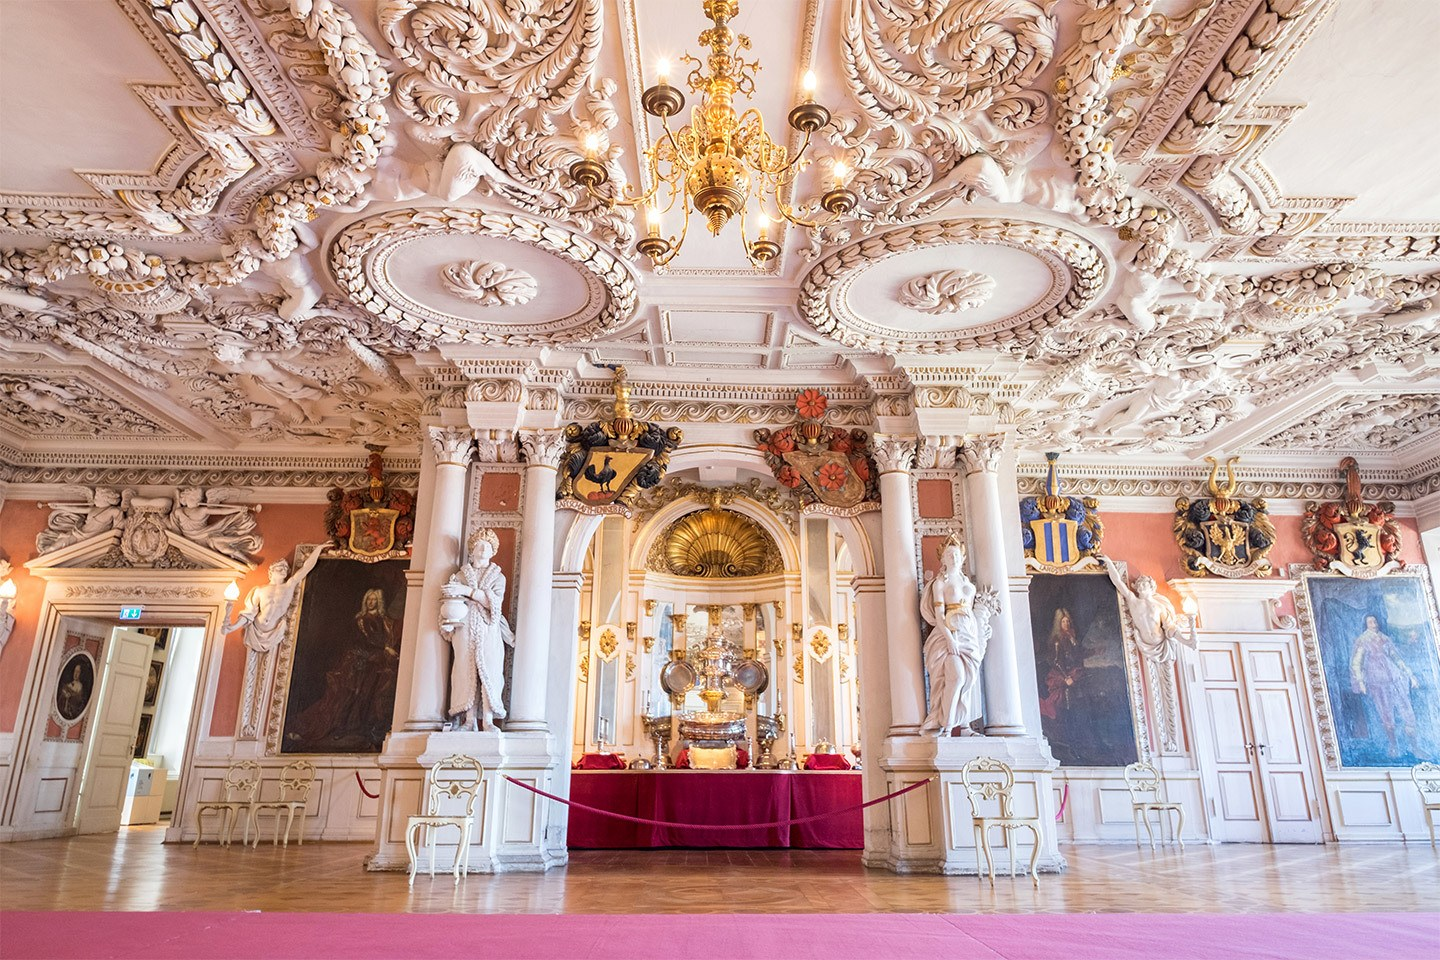 Friedenstein Palace ballroom